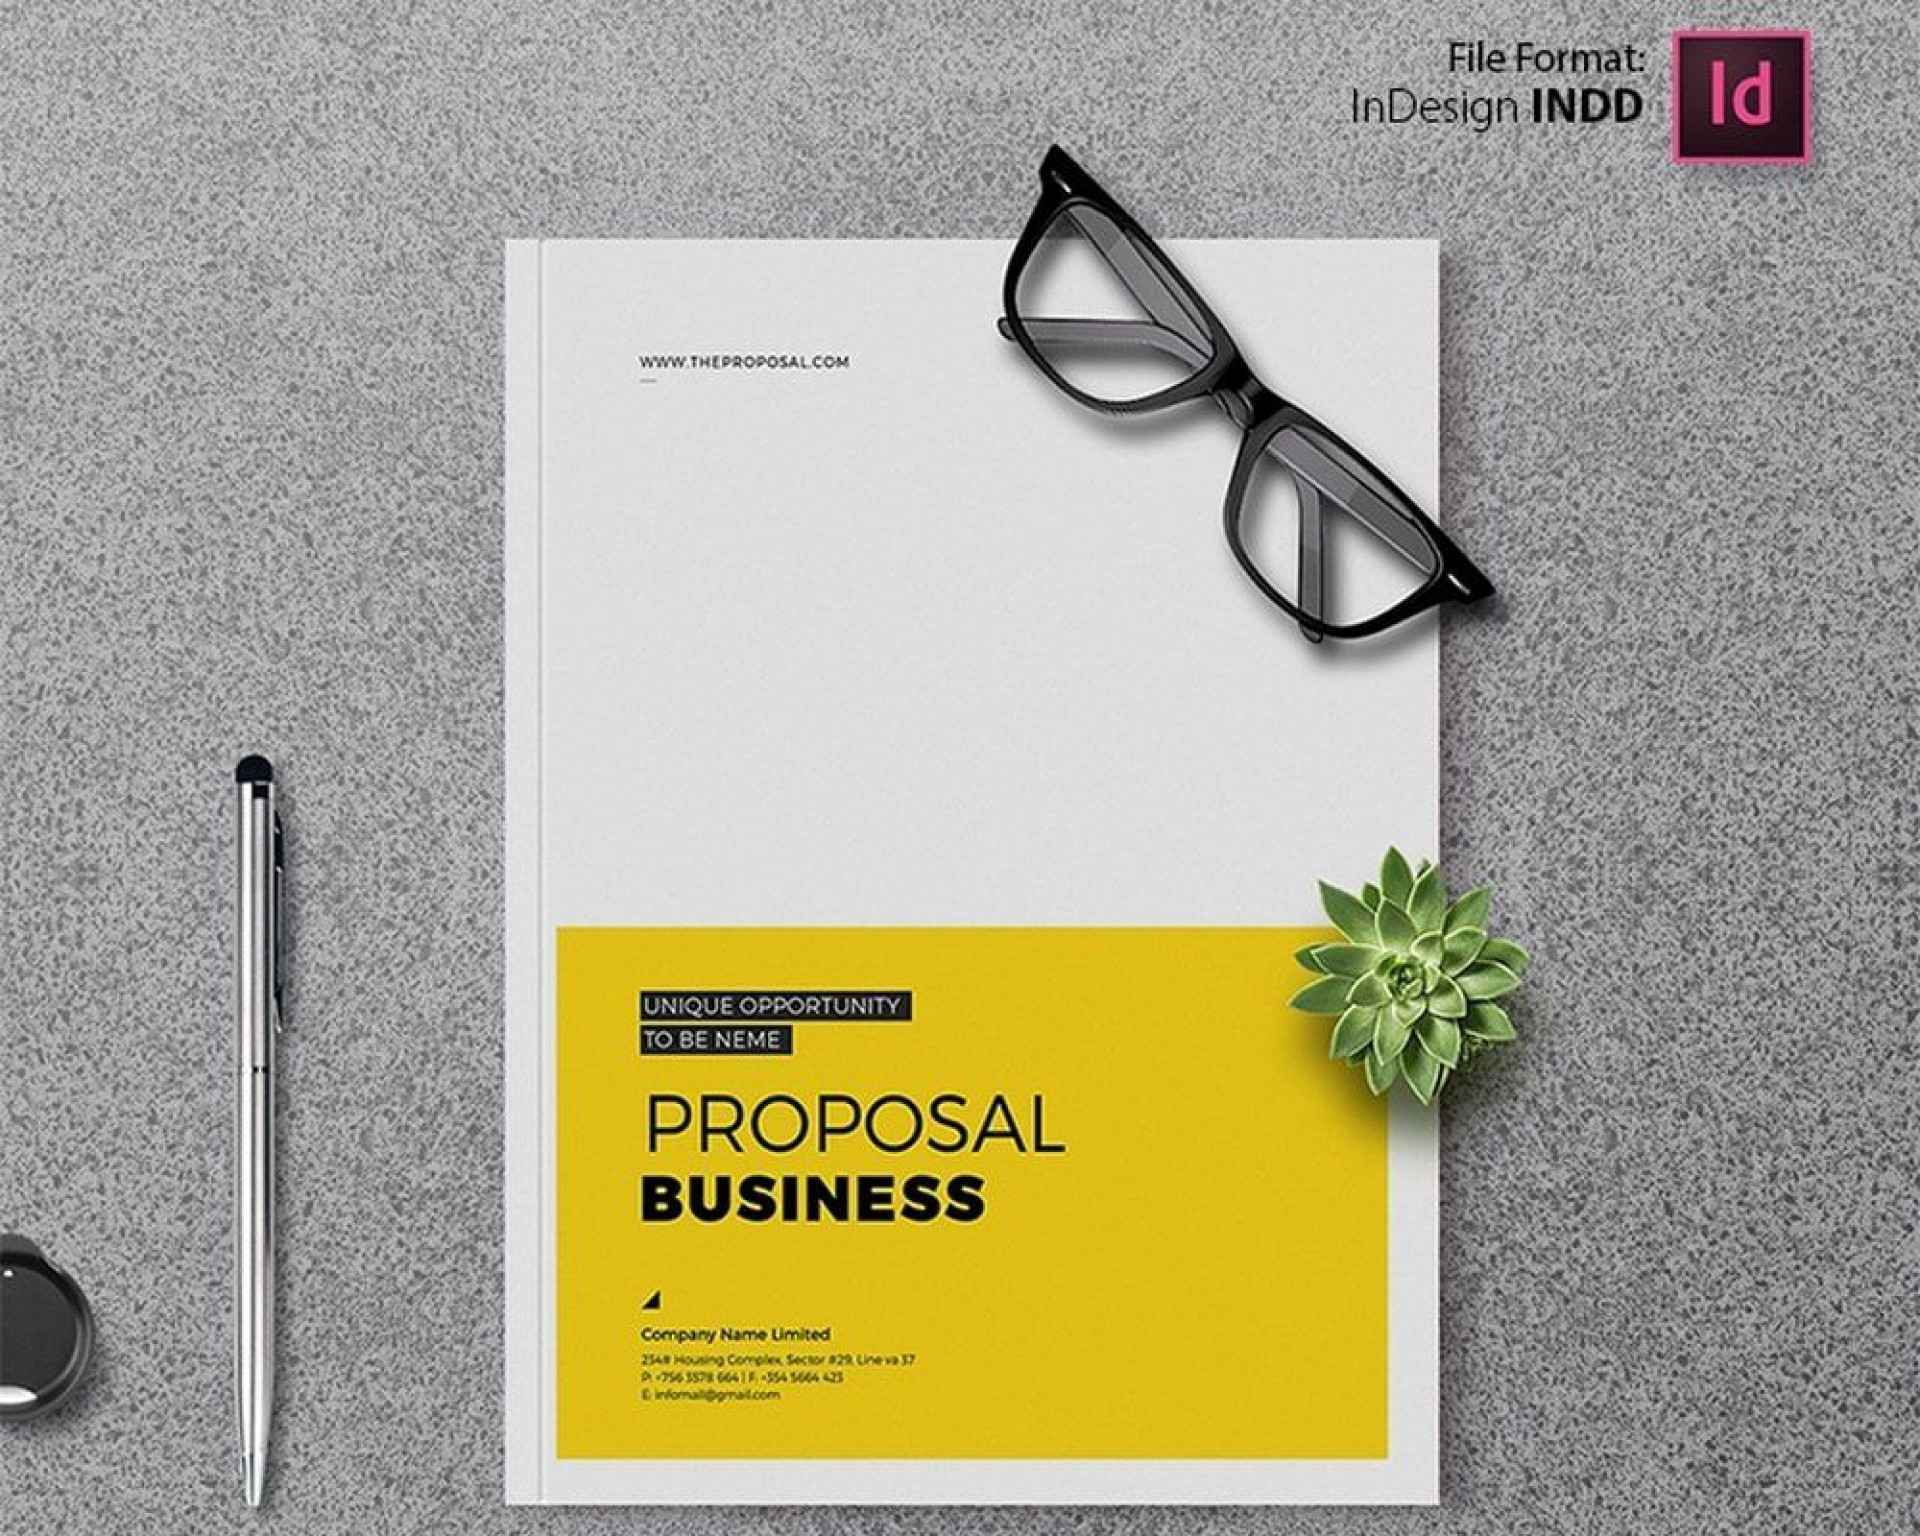 006 Fearsome Indesign A4 Brochure Template Free Download Idea 1920